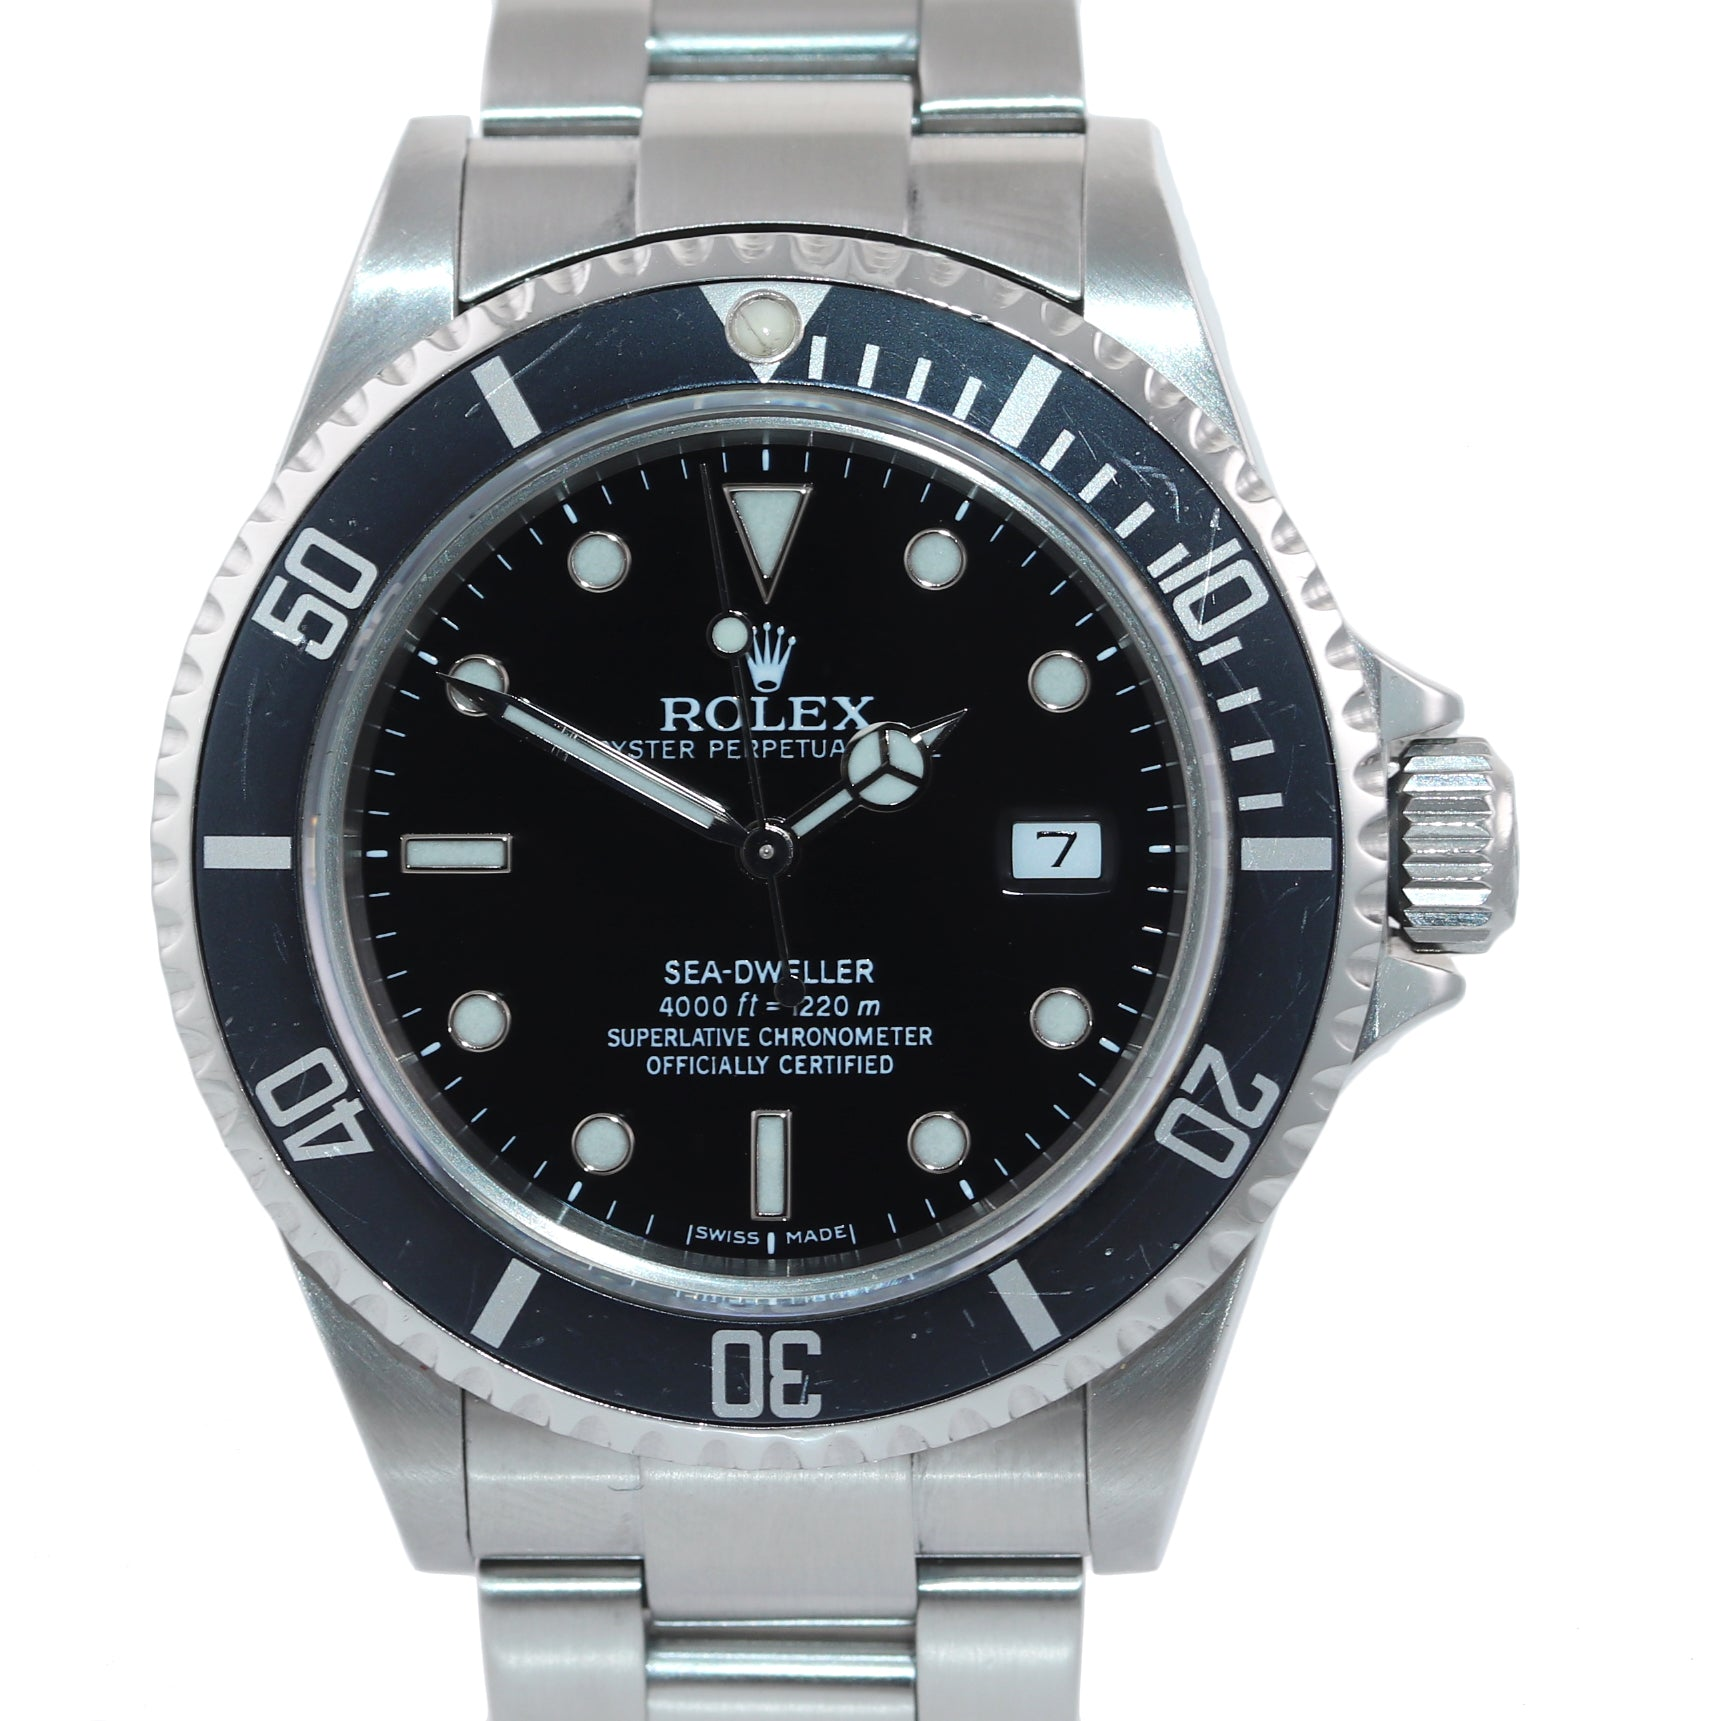 2008 Rolex Sea-Dweller 16600 Steel Oyster Black Dial Dive 40mm Watch Box